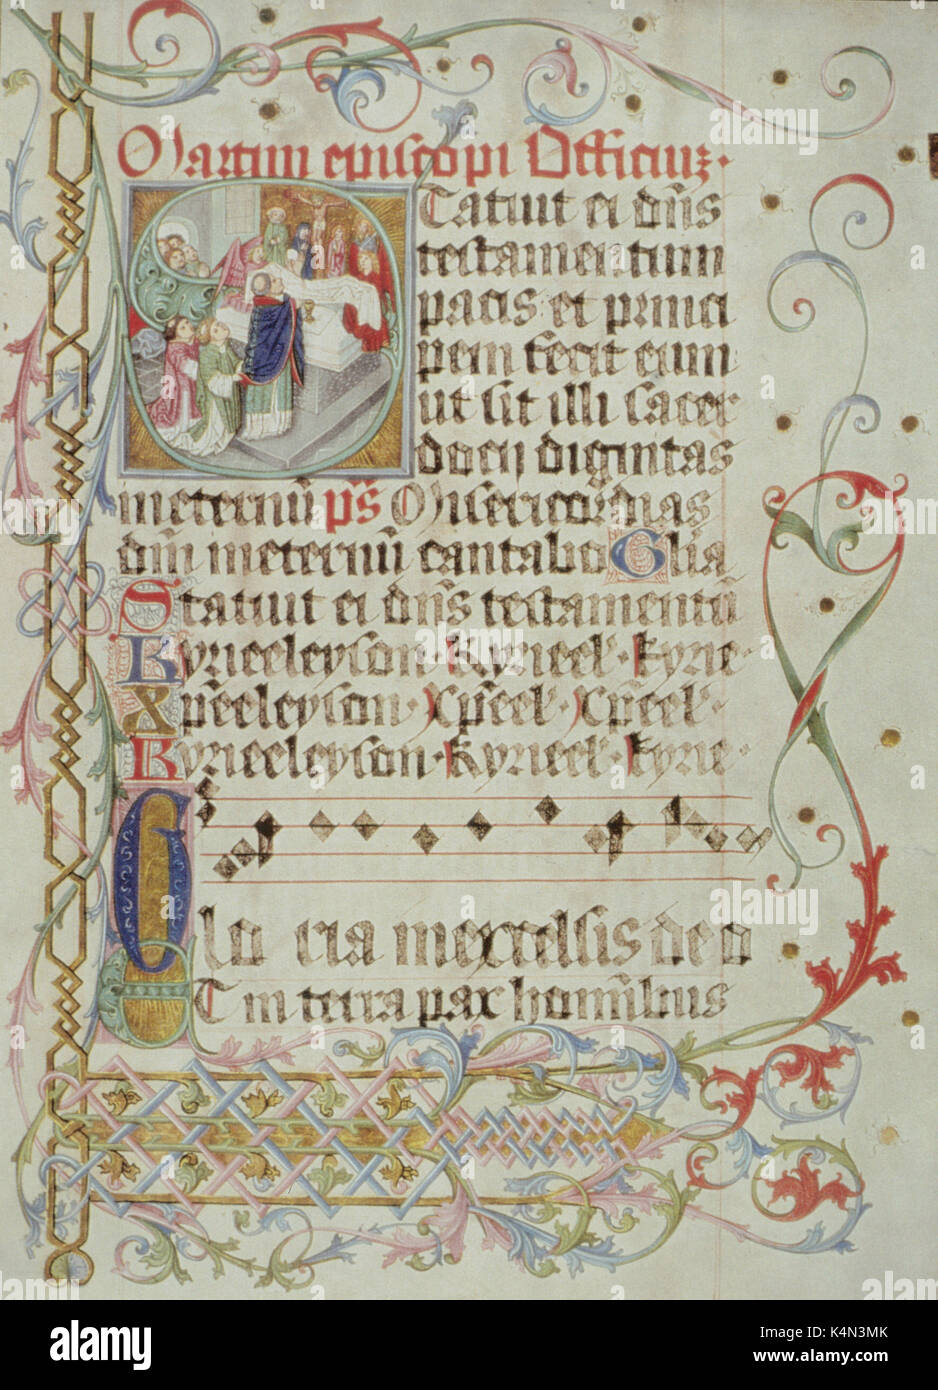 Medieval score - 'INTROIT AND GLORIA' - 1481. Illuminated manuscript.  Example of Gregorian chant. Plainsong. Music written on four line stave -  black notes ...